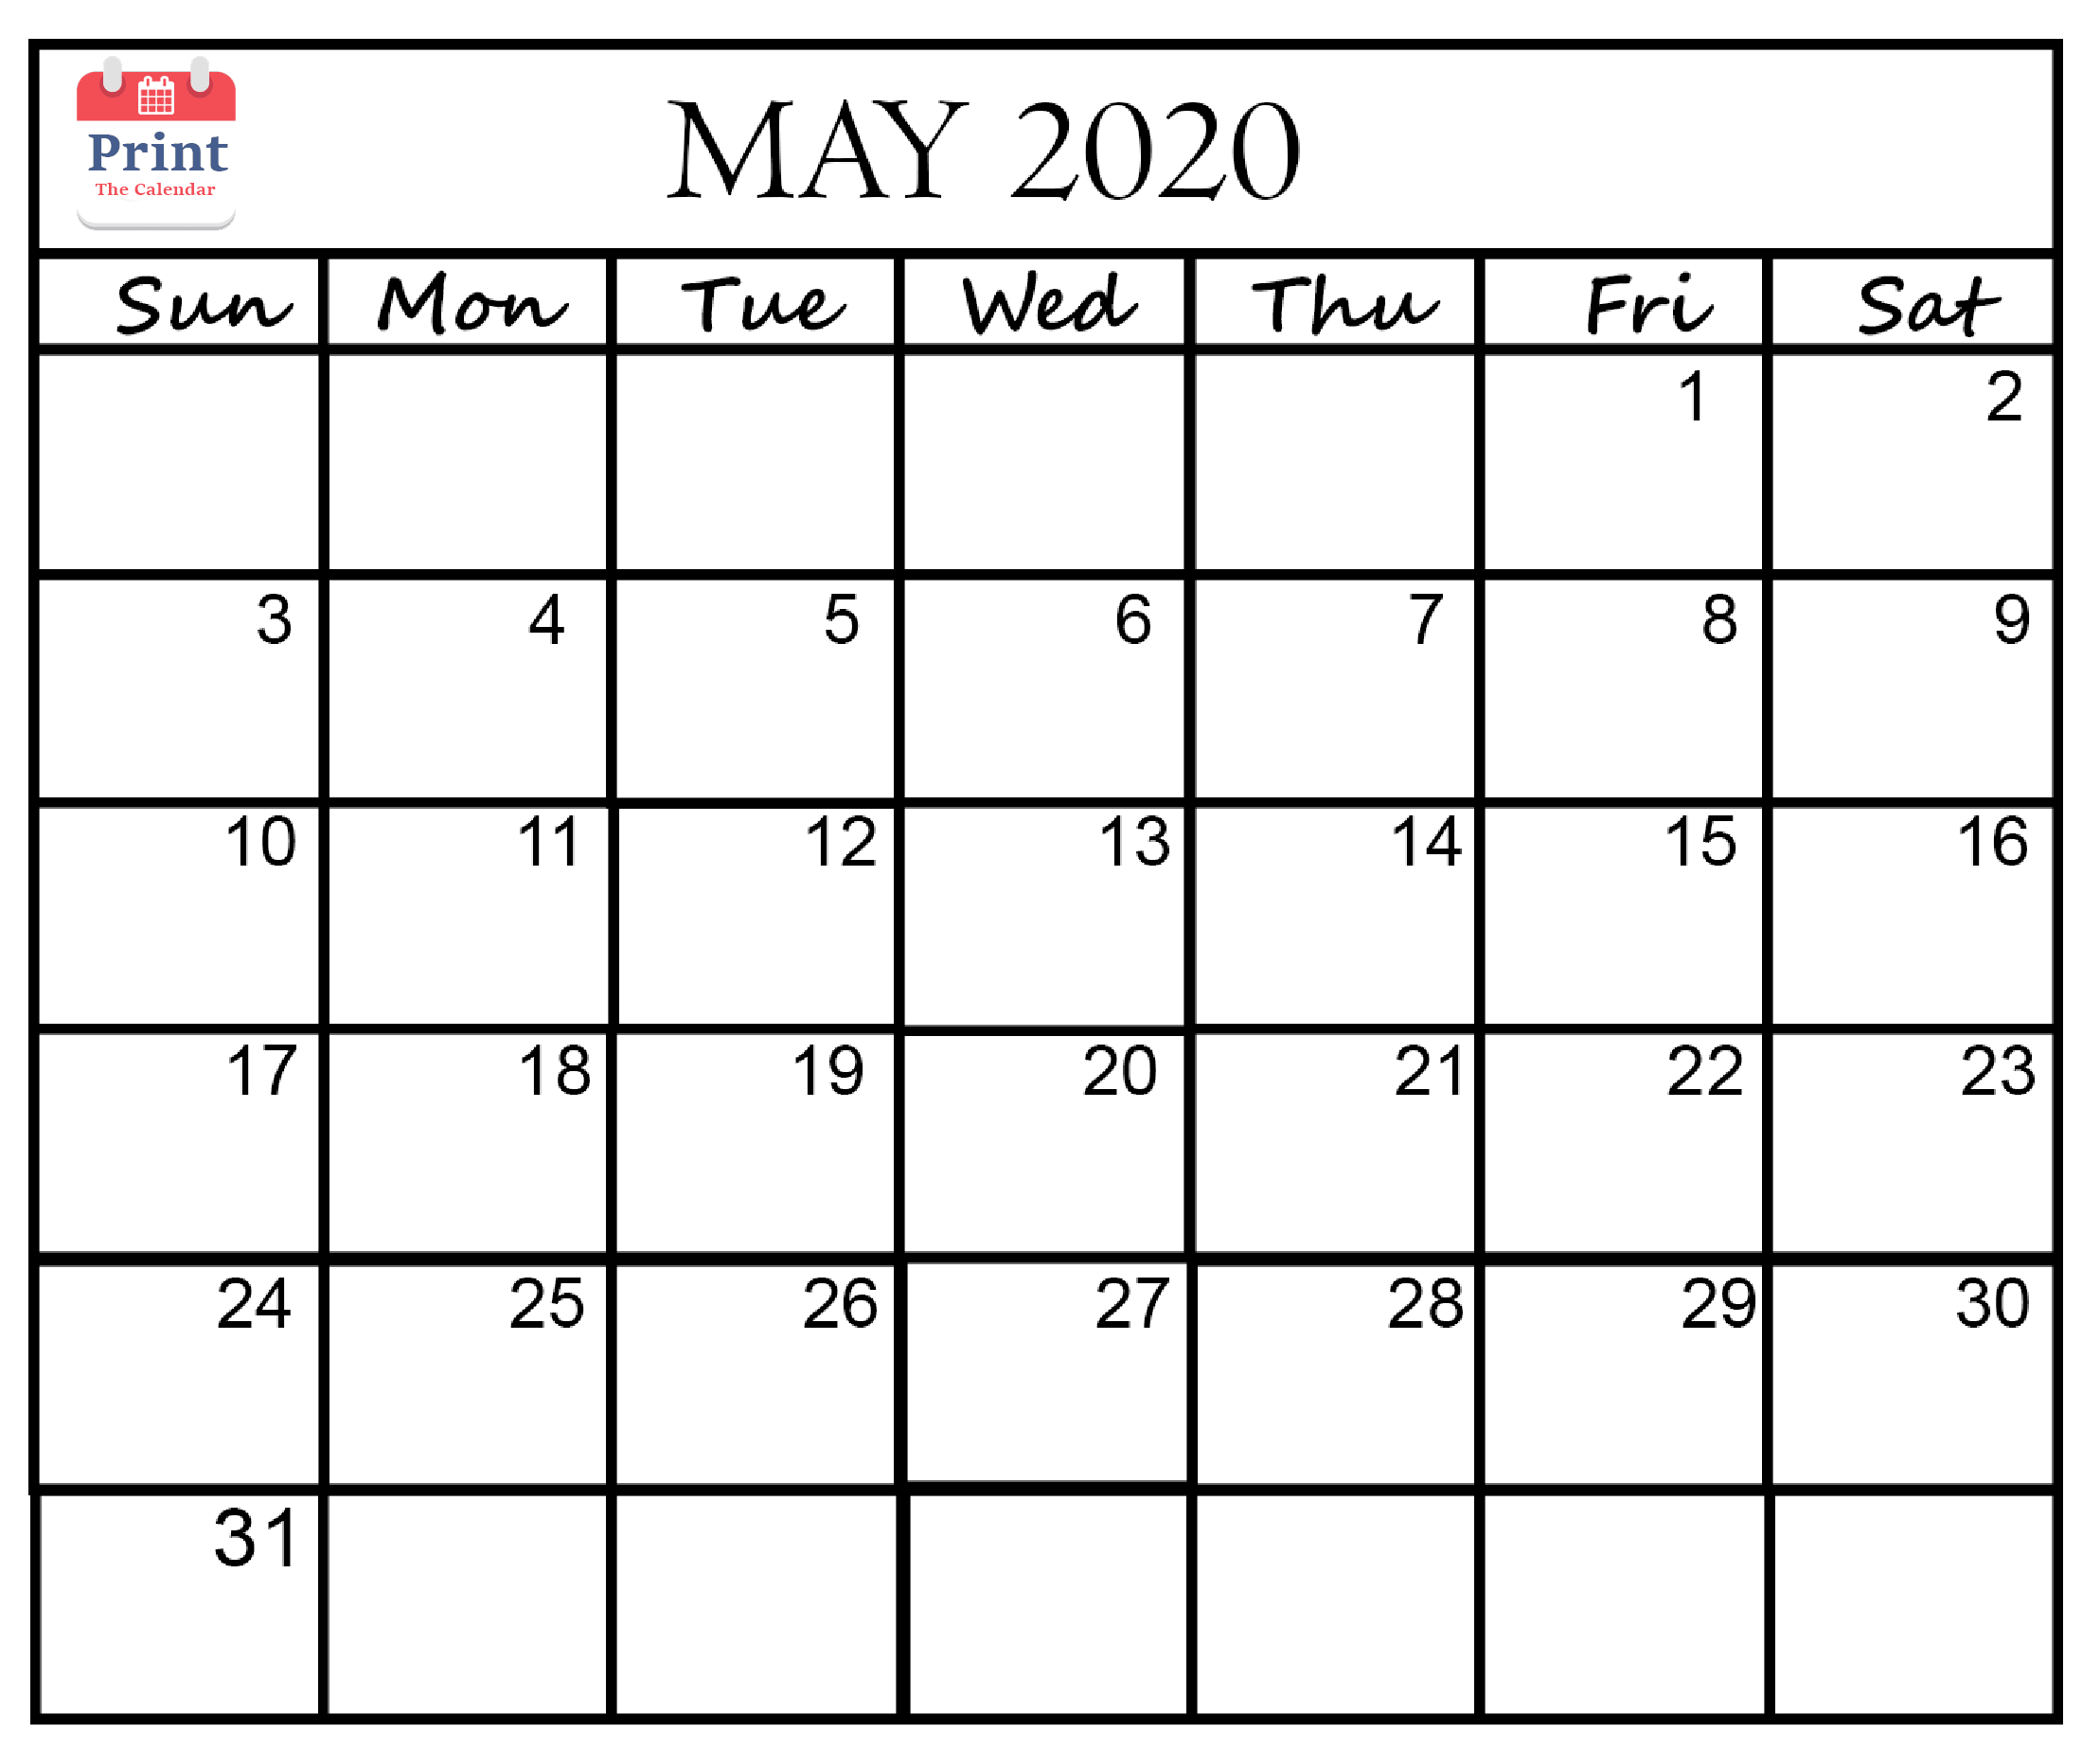 May 2020 Calendar Printable Template